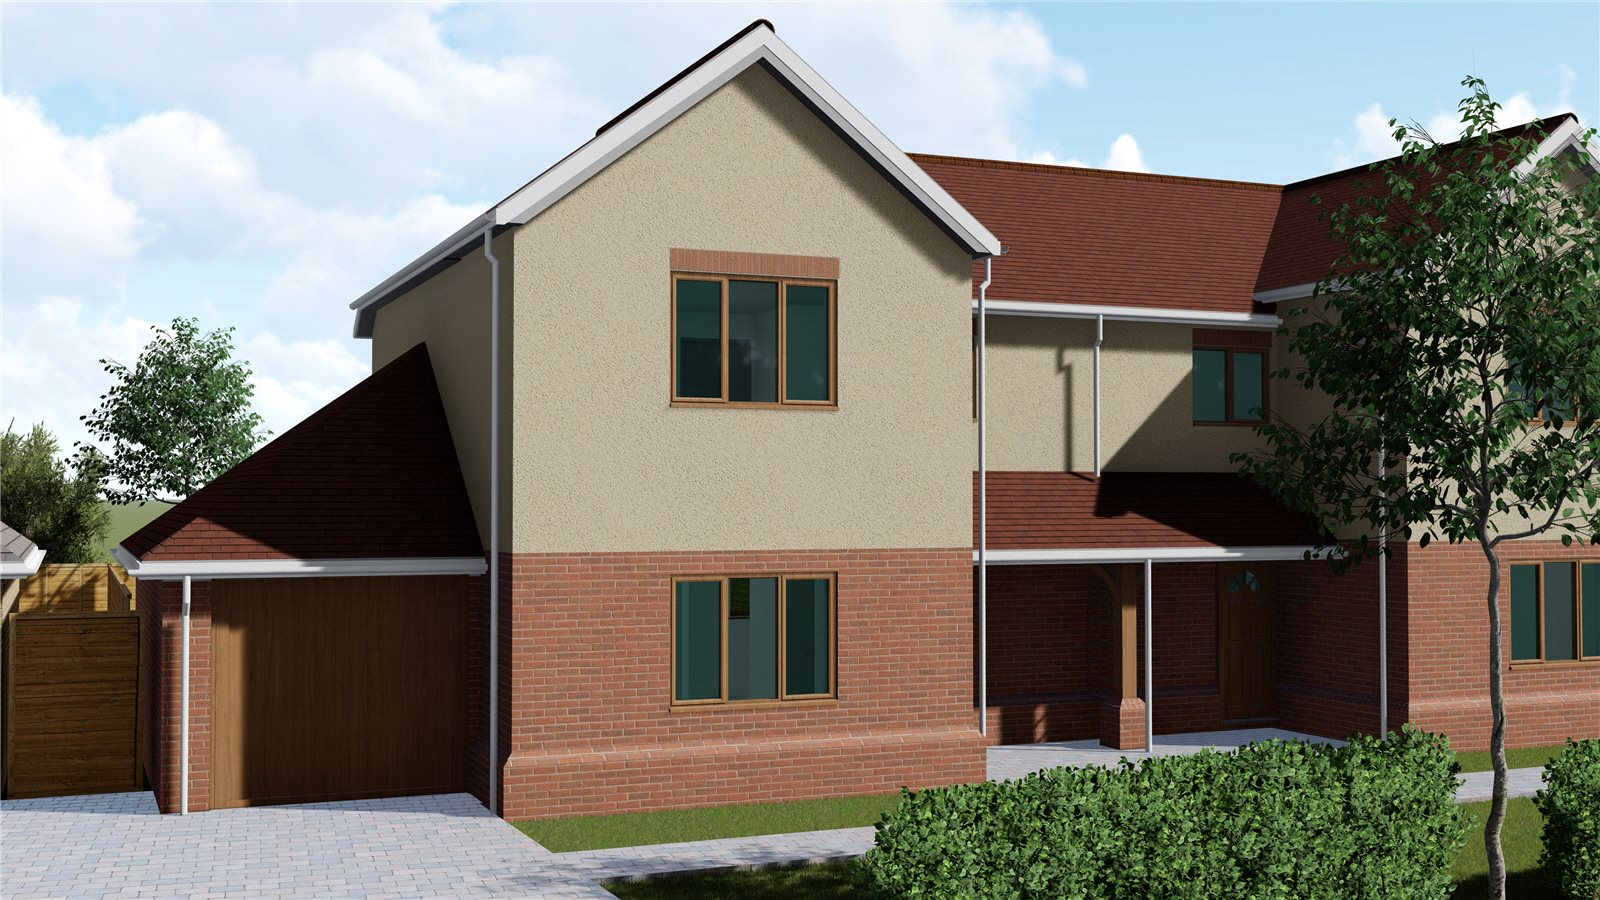 3 bed house for sale in Starlings View, Arundel Road, Angmering - Property Image 1